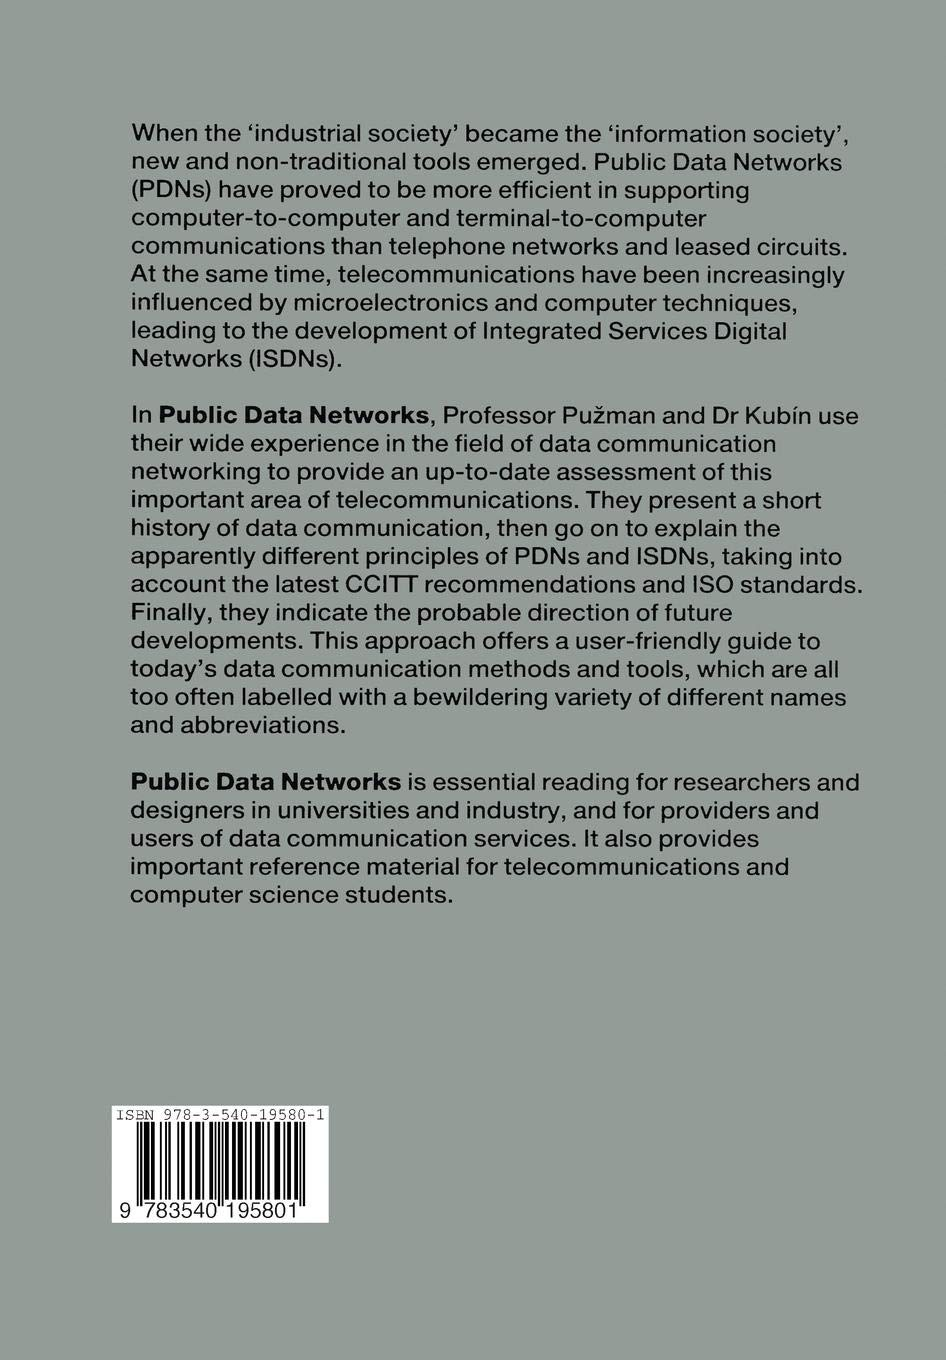 Public Data Networks: From Separate PDNs to the ISDN